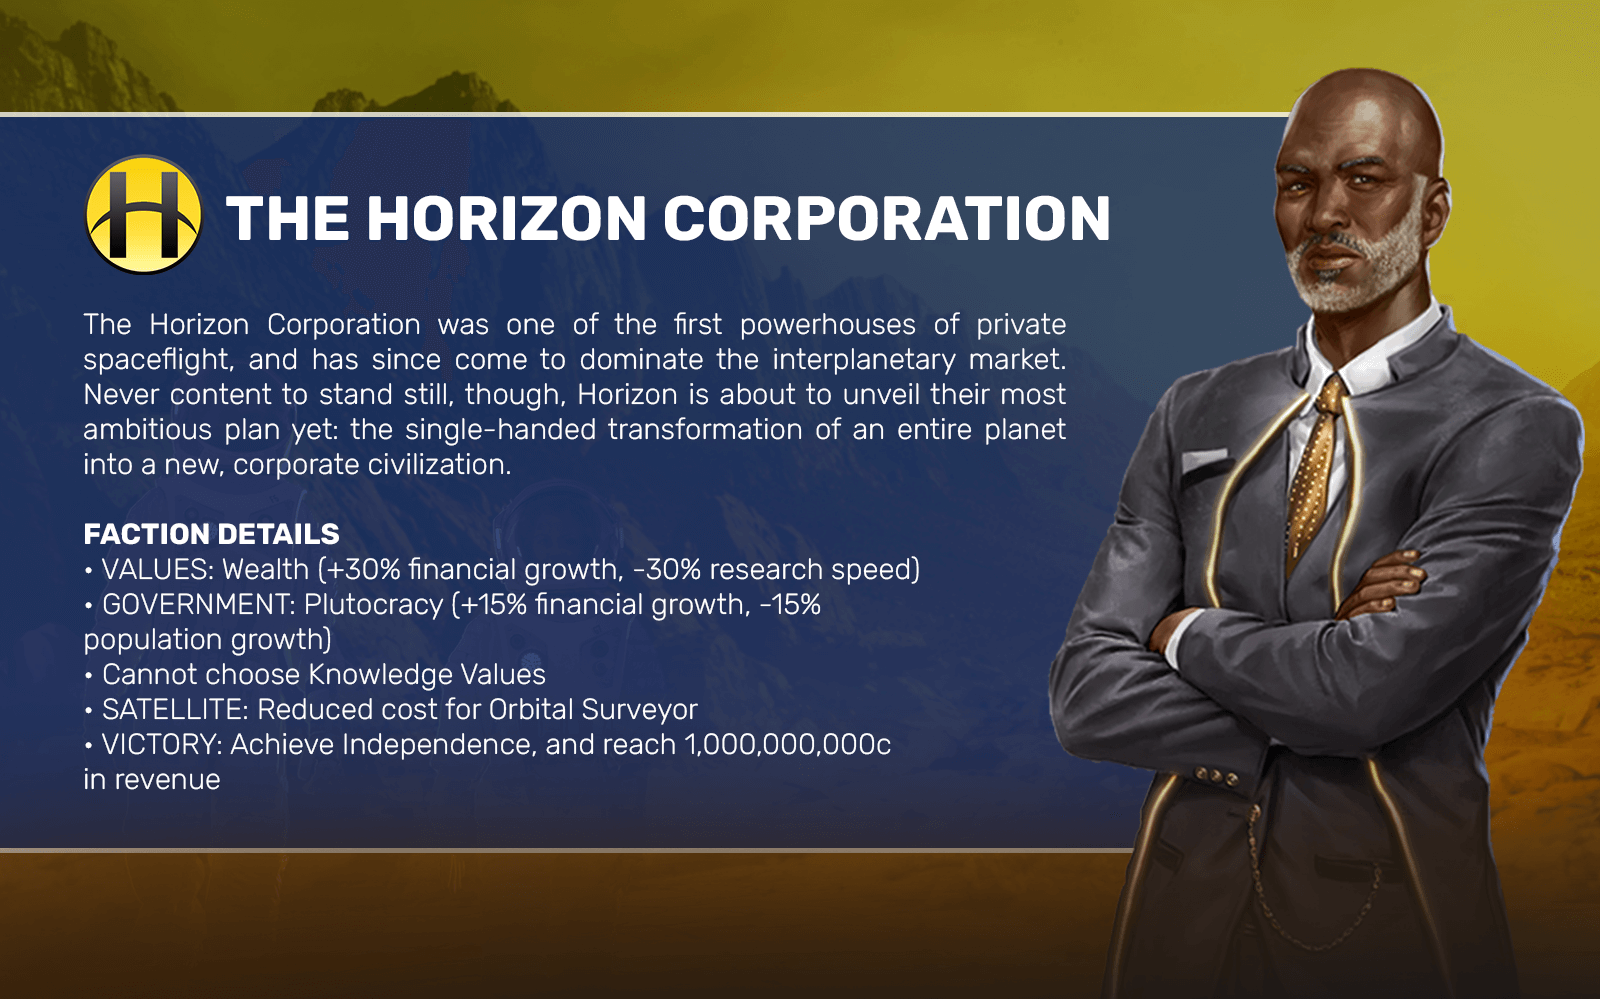 THE HORIZON CORPORATION